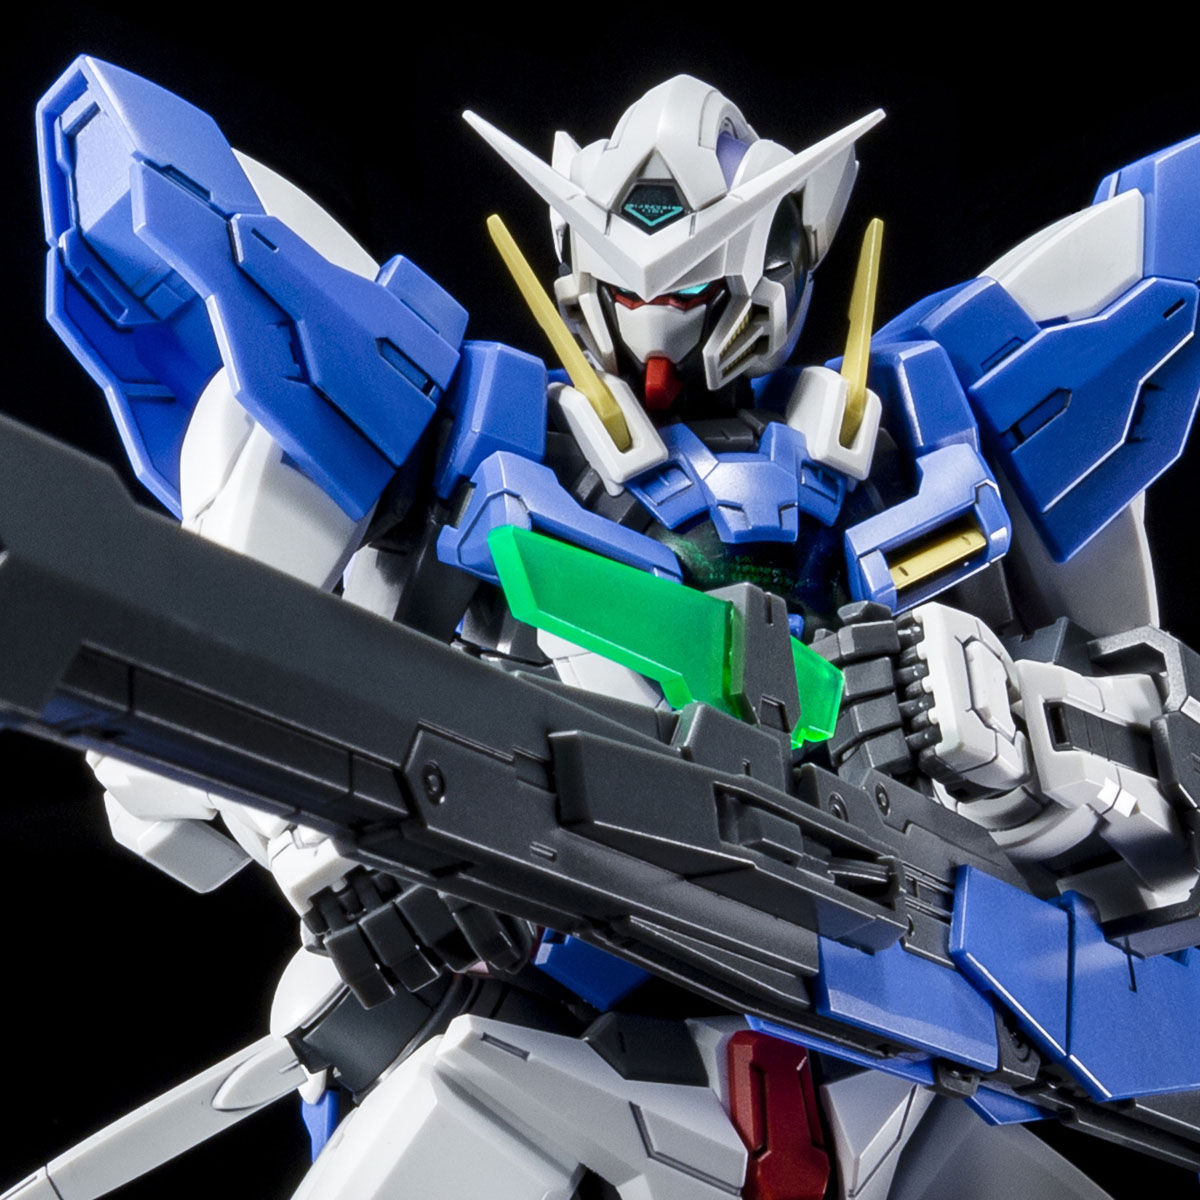 MG 1/100 GUNDAM EXIA REPAIR III [July 2021 Delivery]